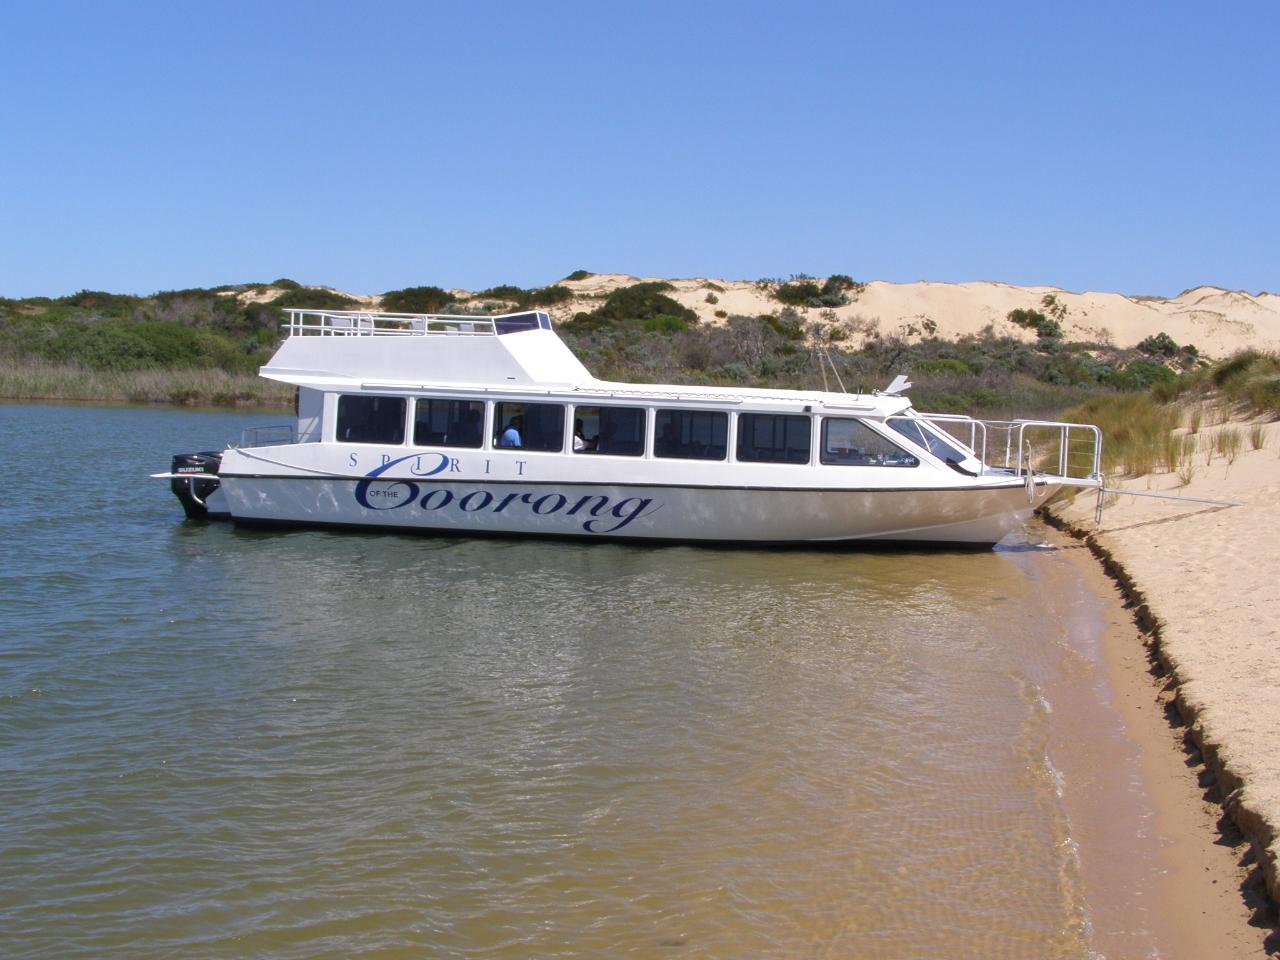 ZZZ - Spirit of Coorong River Murray Mouth  (Storm Boy Country) & Fleurieu Peninsula Tour - EX Adelaide, Glenelg & Hahndorf